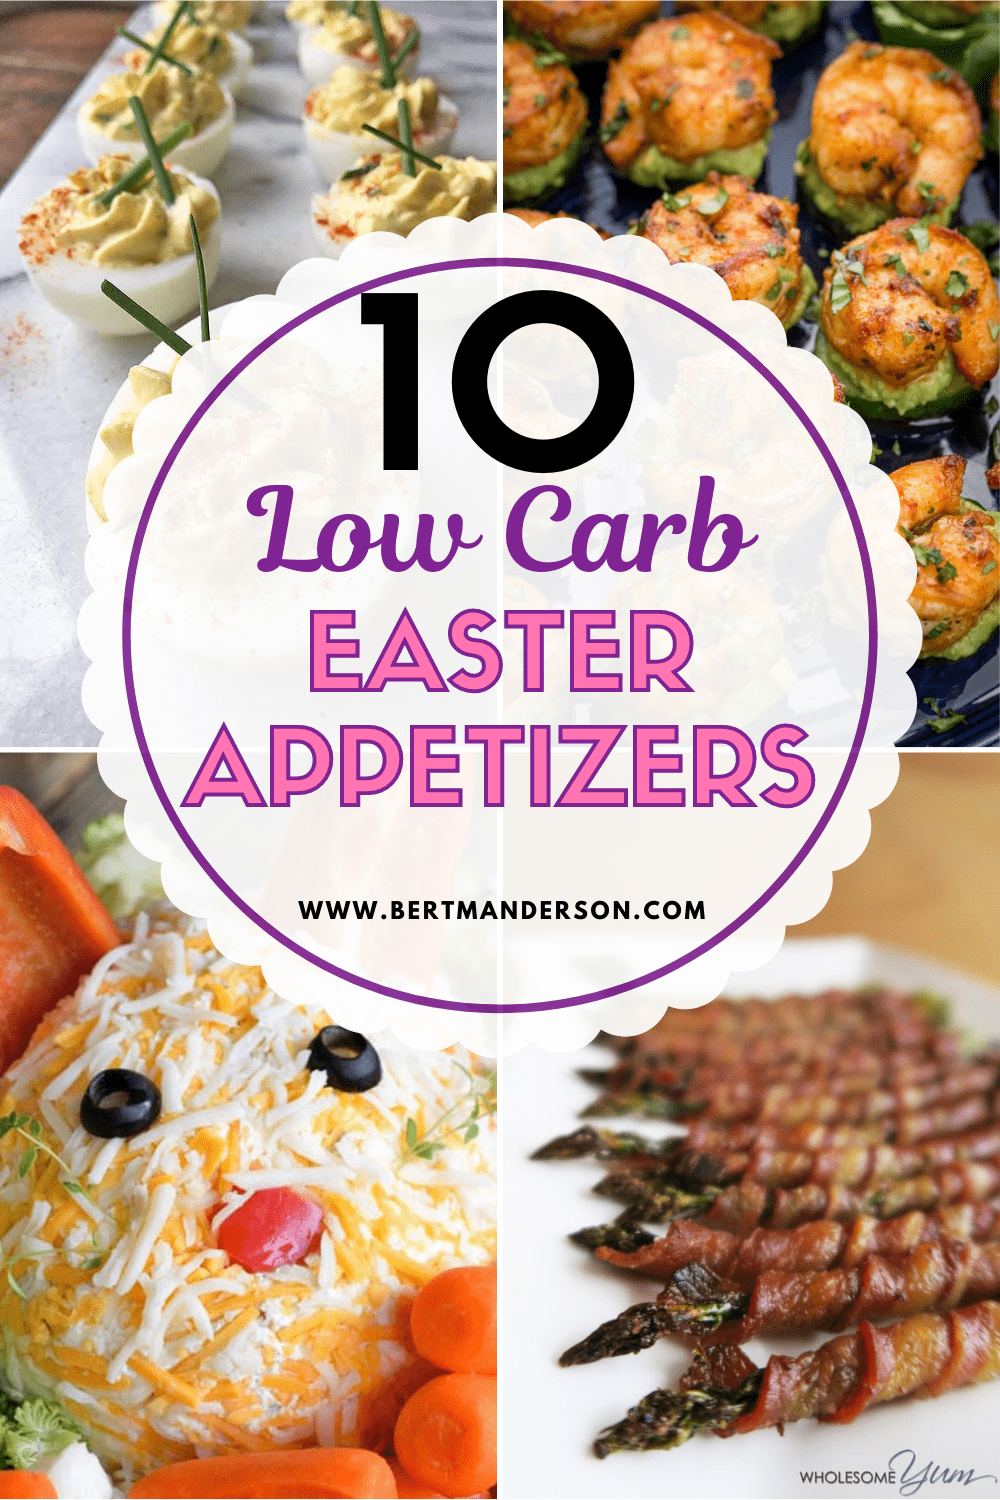 10 Low Carb Easter Appetizers - four images of low carb dishes